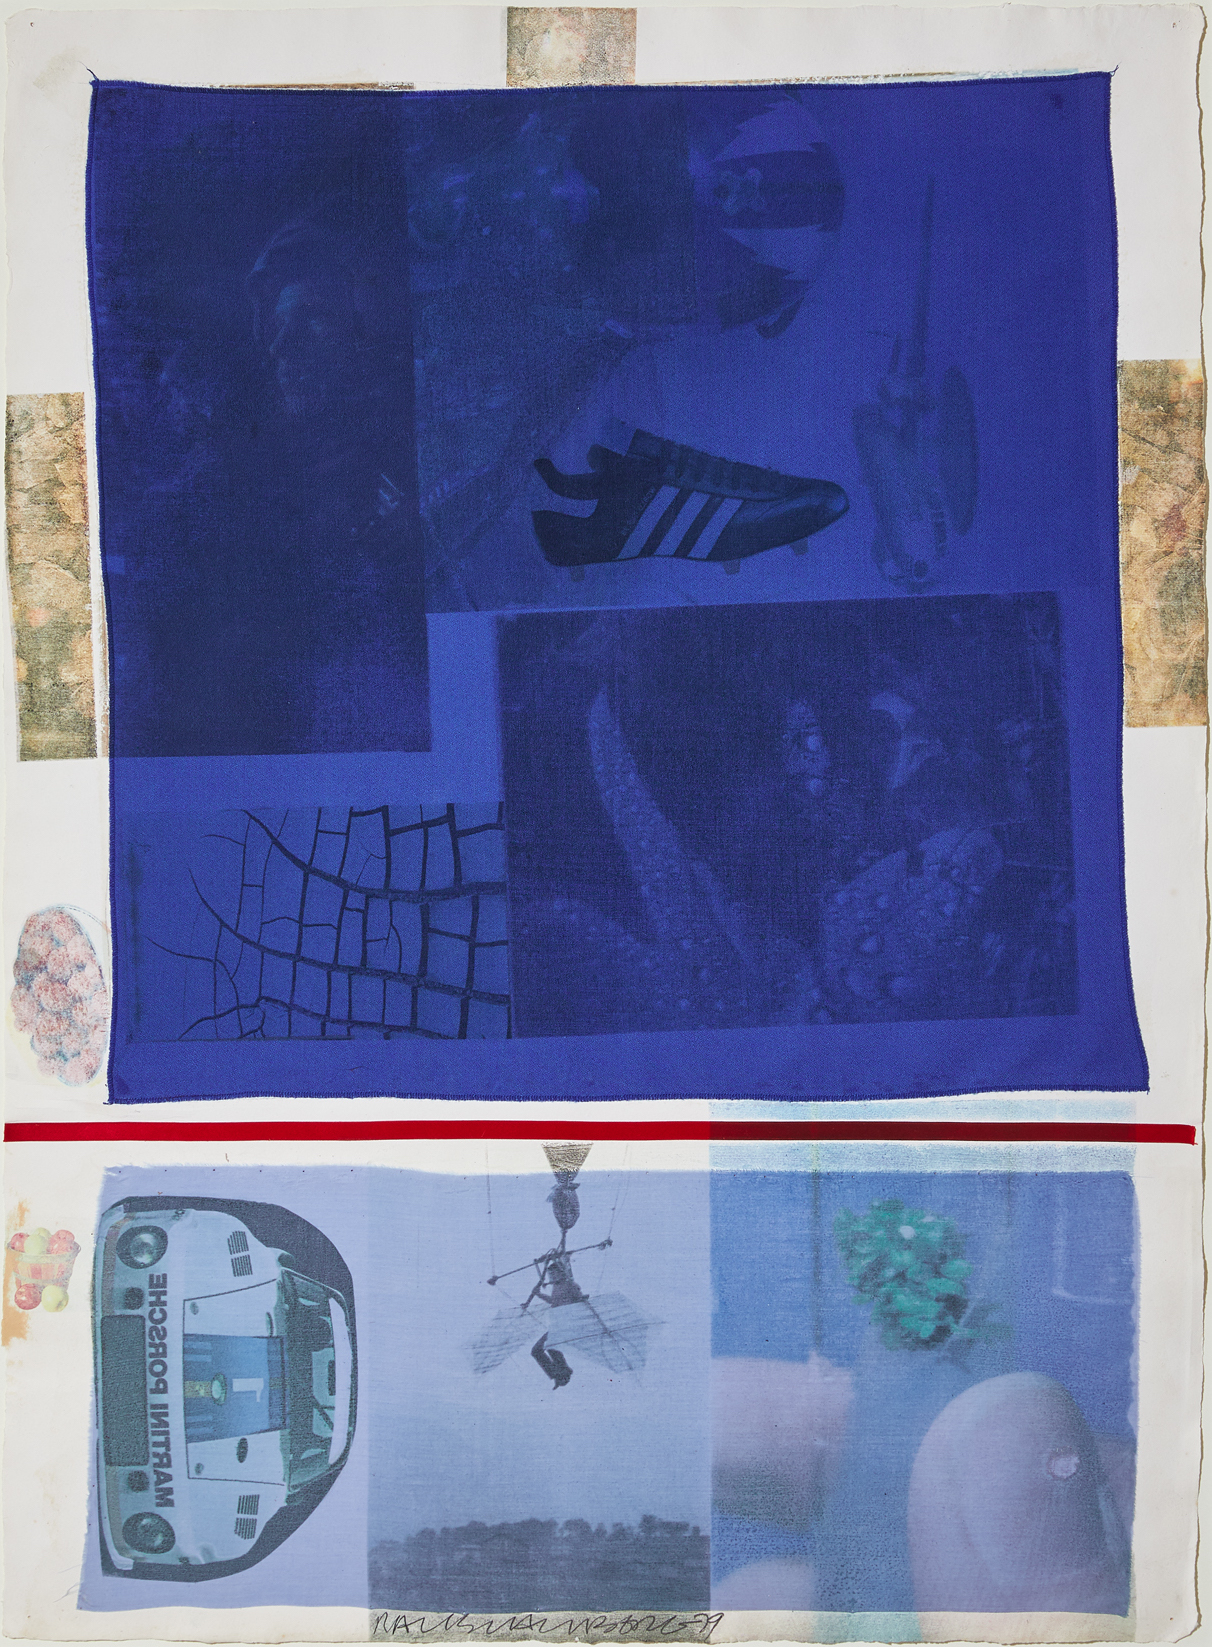 Award, Robert Rauschenberg, 1979, solvent transfer on fabric collaged on paper, 81.3 x 59.7 cm © Robert Rauschenberg Foundation licensed by DACS London.